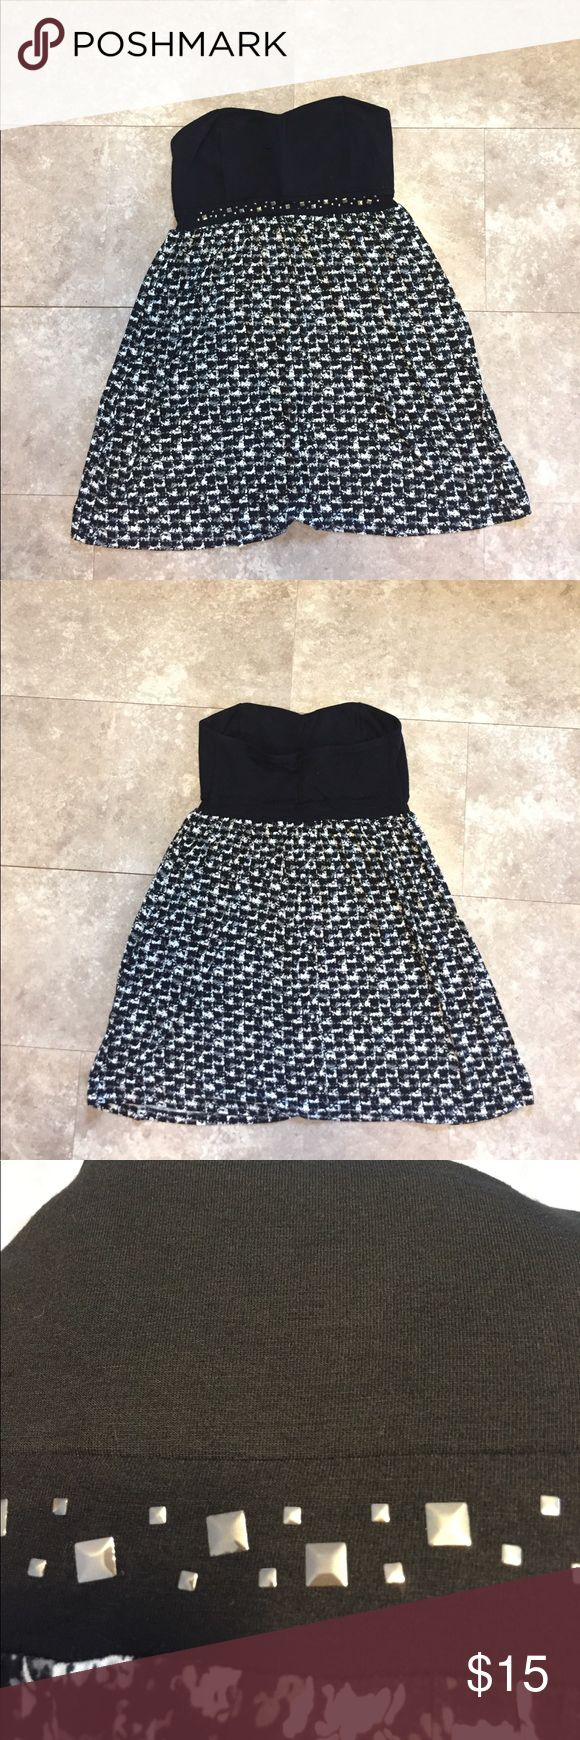 Black and white camouflage dress Comfortable, yet formal dress for any occasion!! City Streets Dresses Strapless